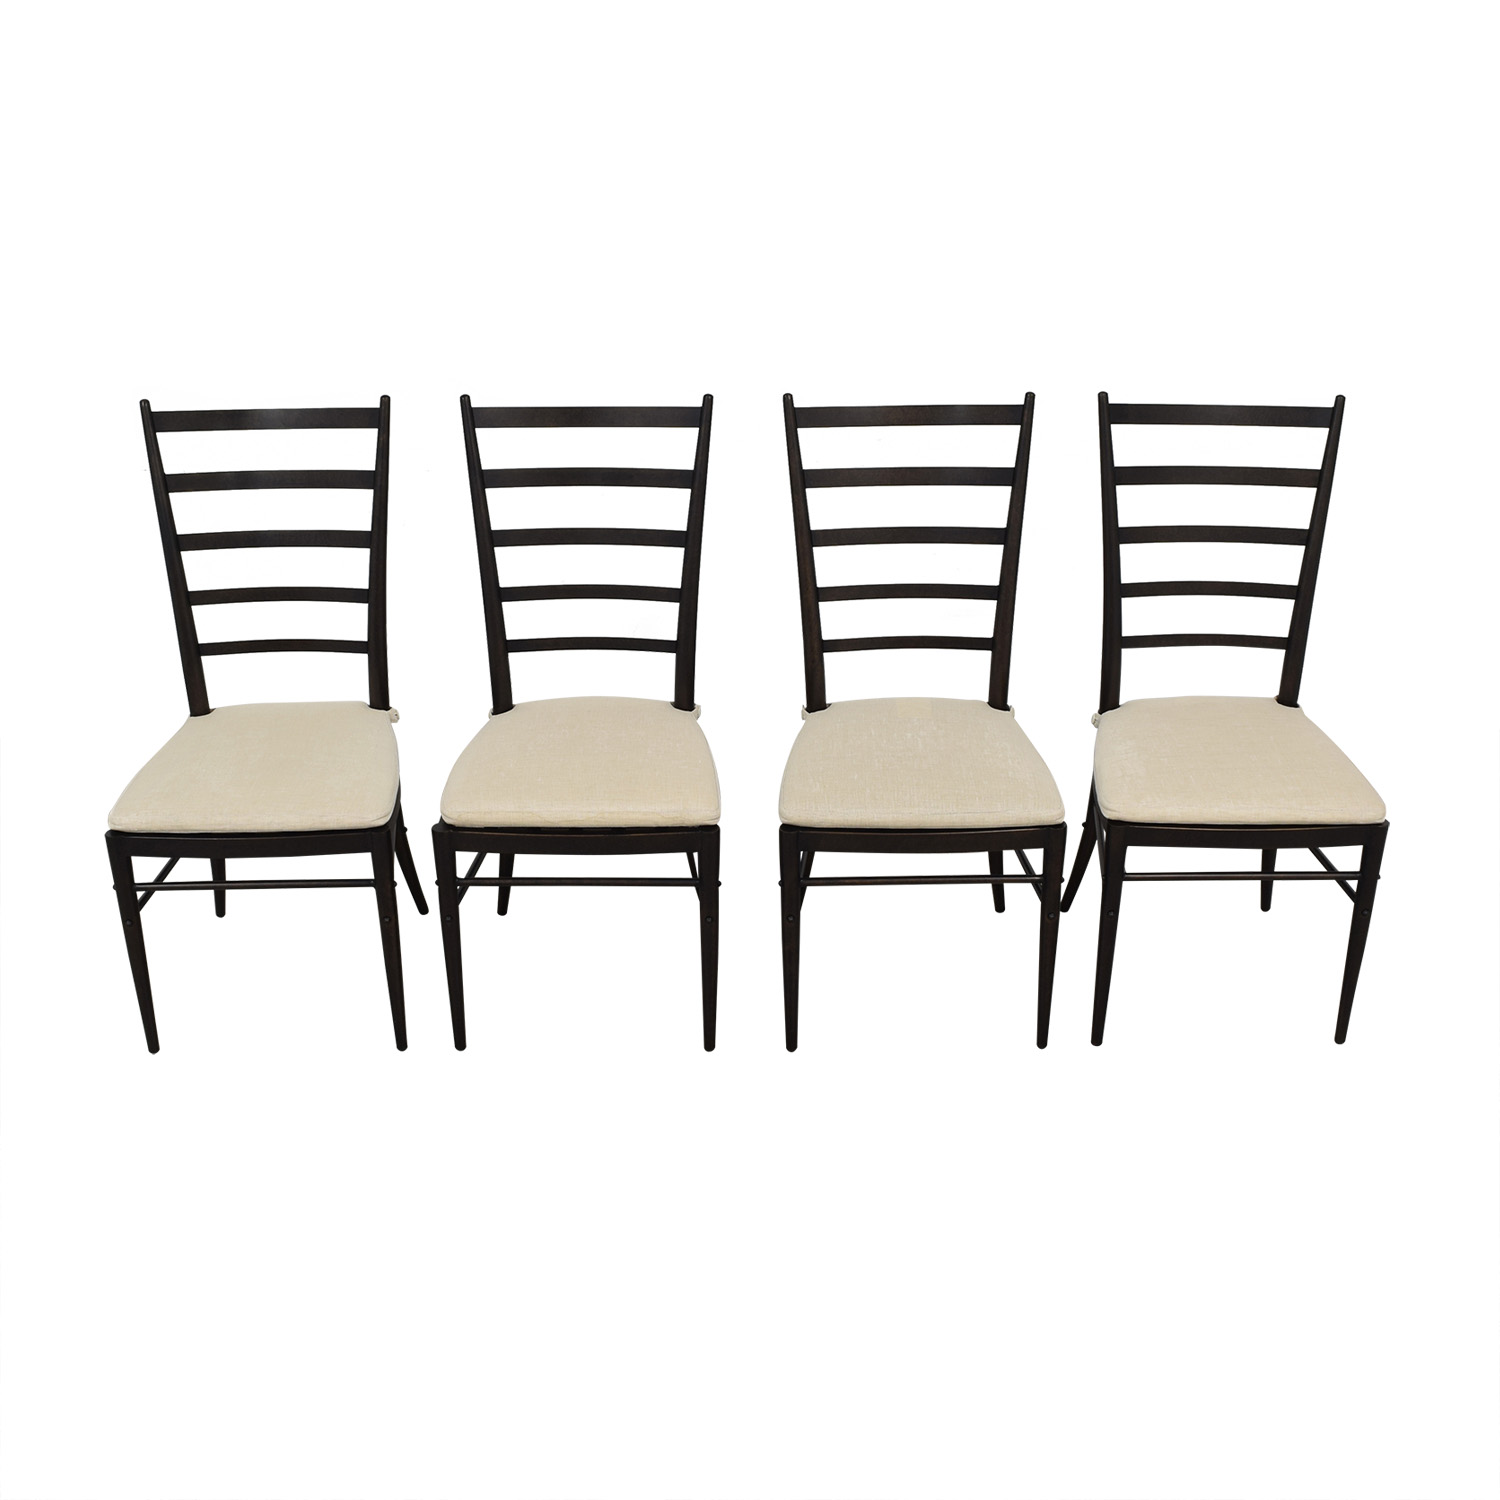 Crate & Barrel Crate & Barrel Ladder Back Dining Chairs coupon